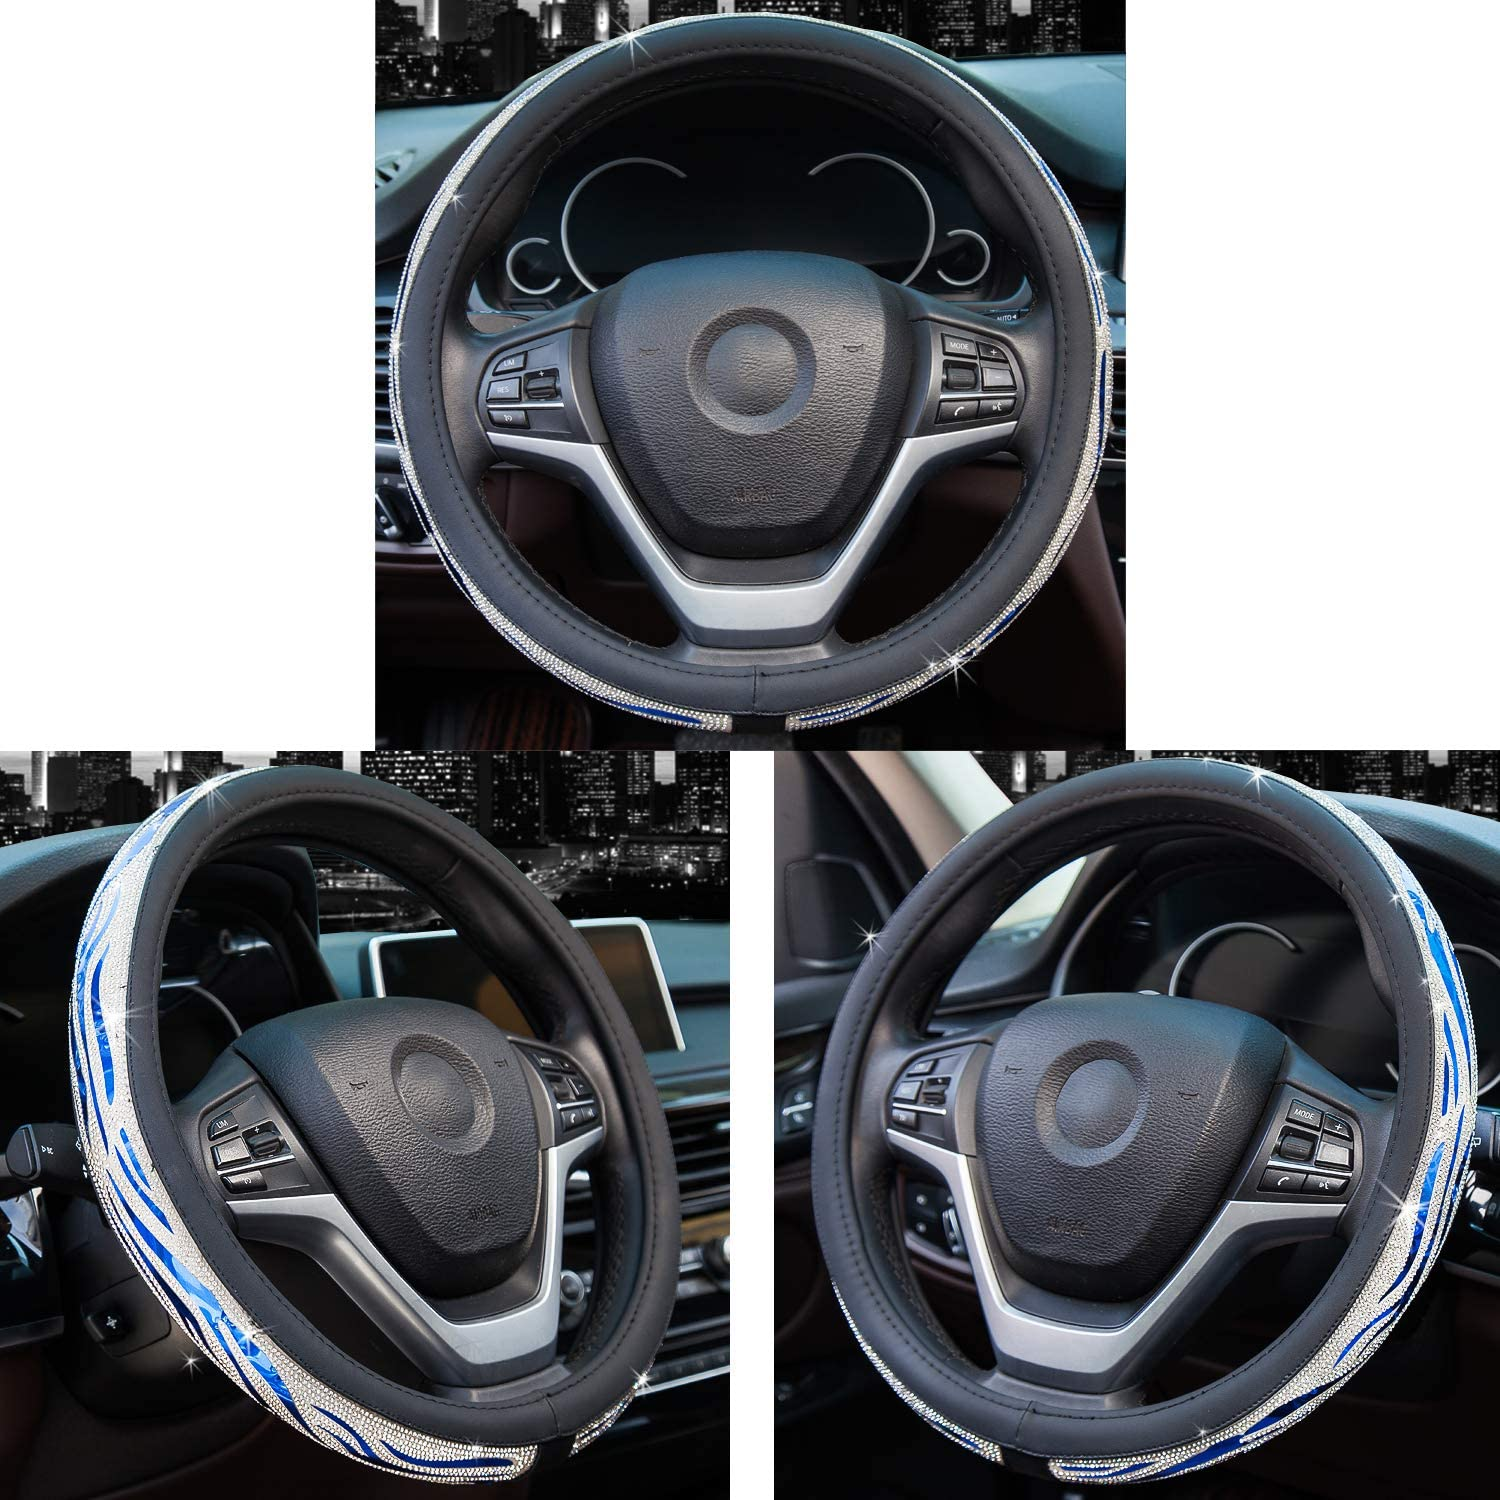 Colorful Didida Bling Steering Wheel Cover for Men Women Diamond Crystal Rhinestones Shiny Universal 15 Inch